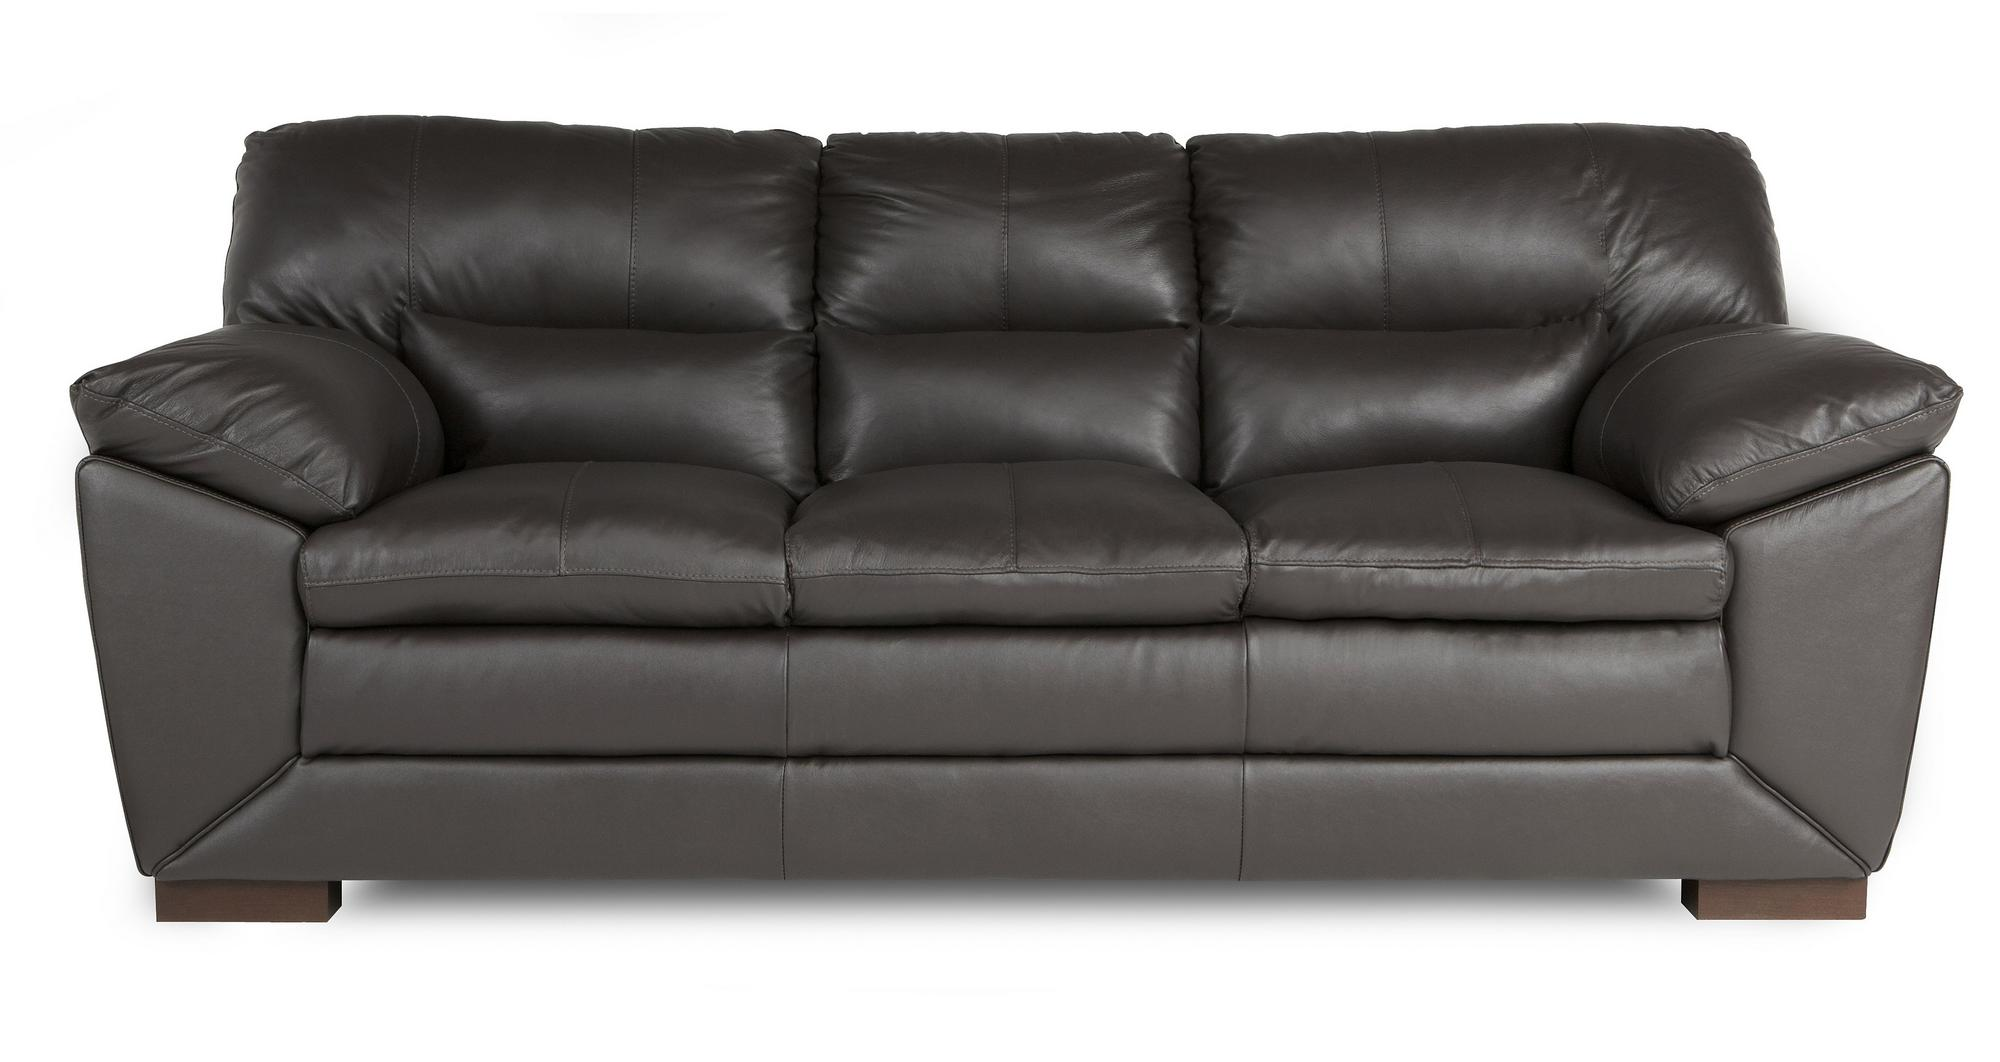 Dfs New Valiant Mocha Brown 100 Leather 3 Seater Sofa